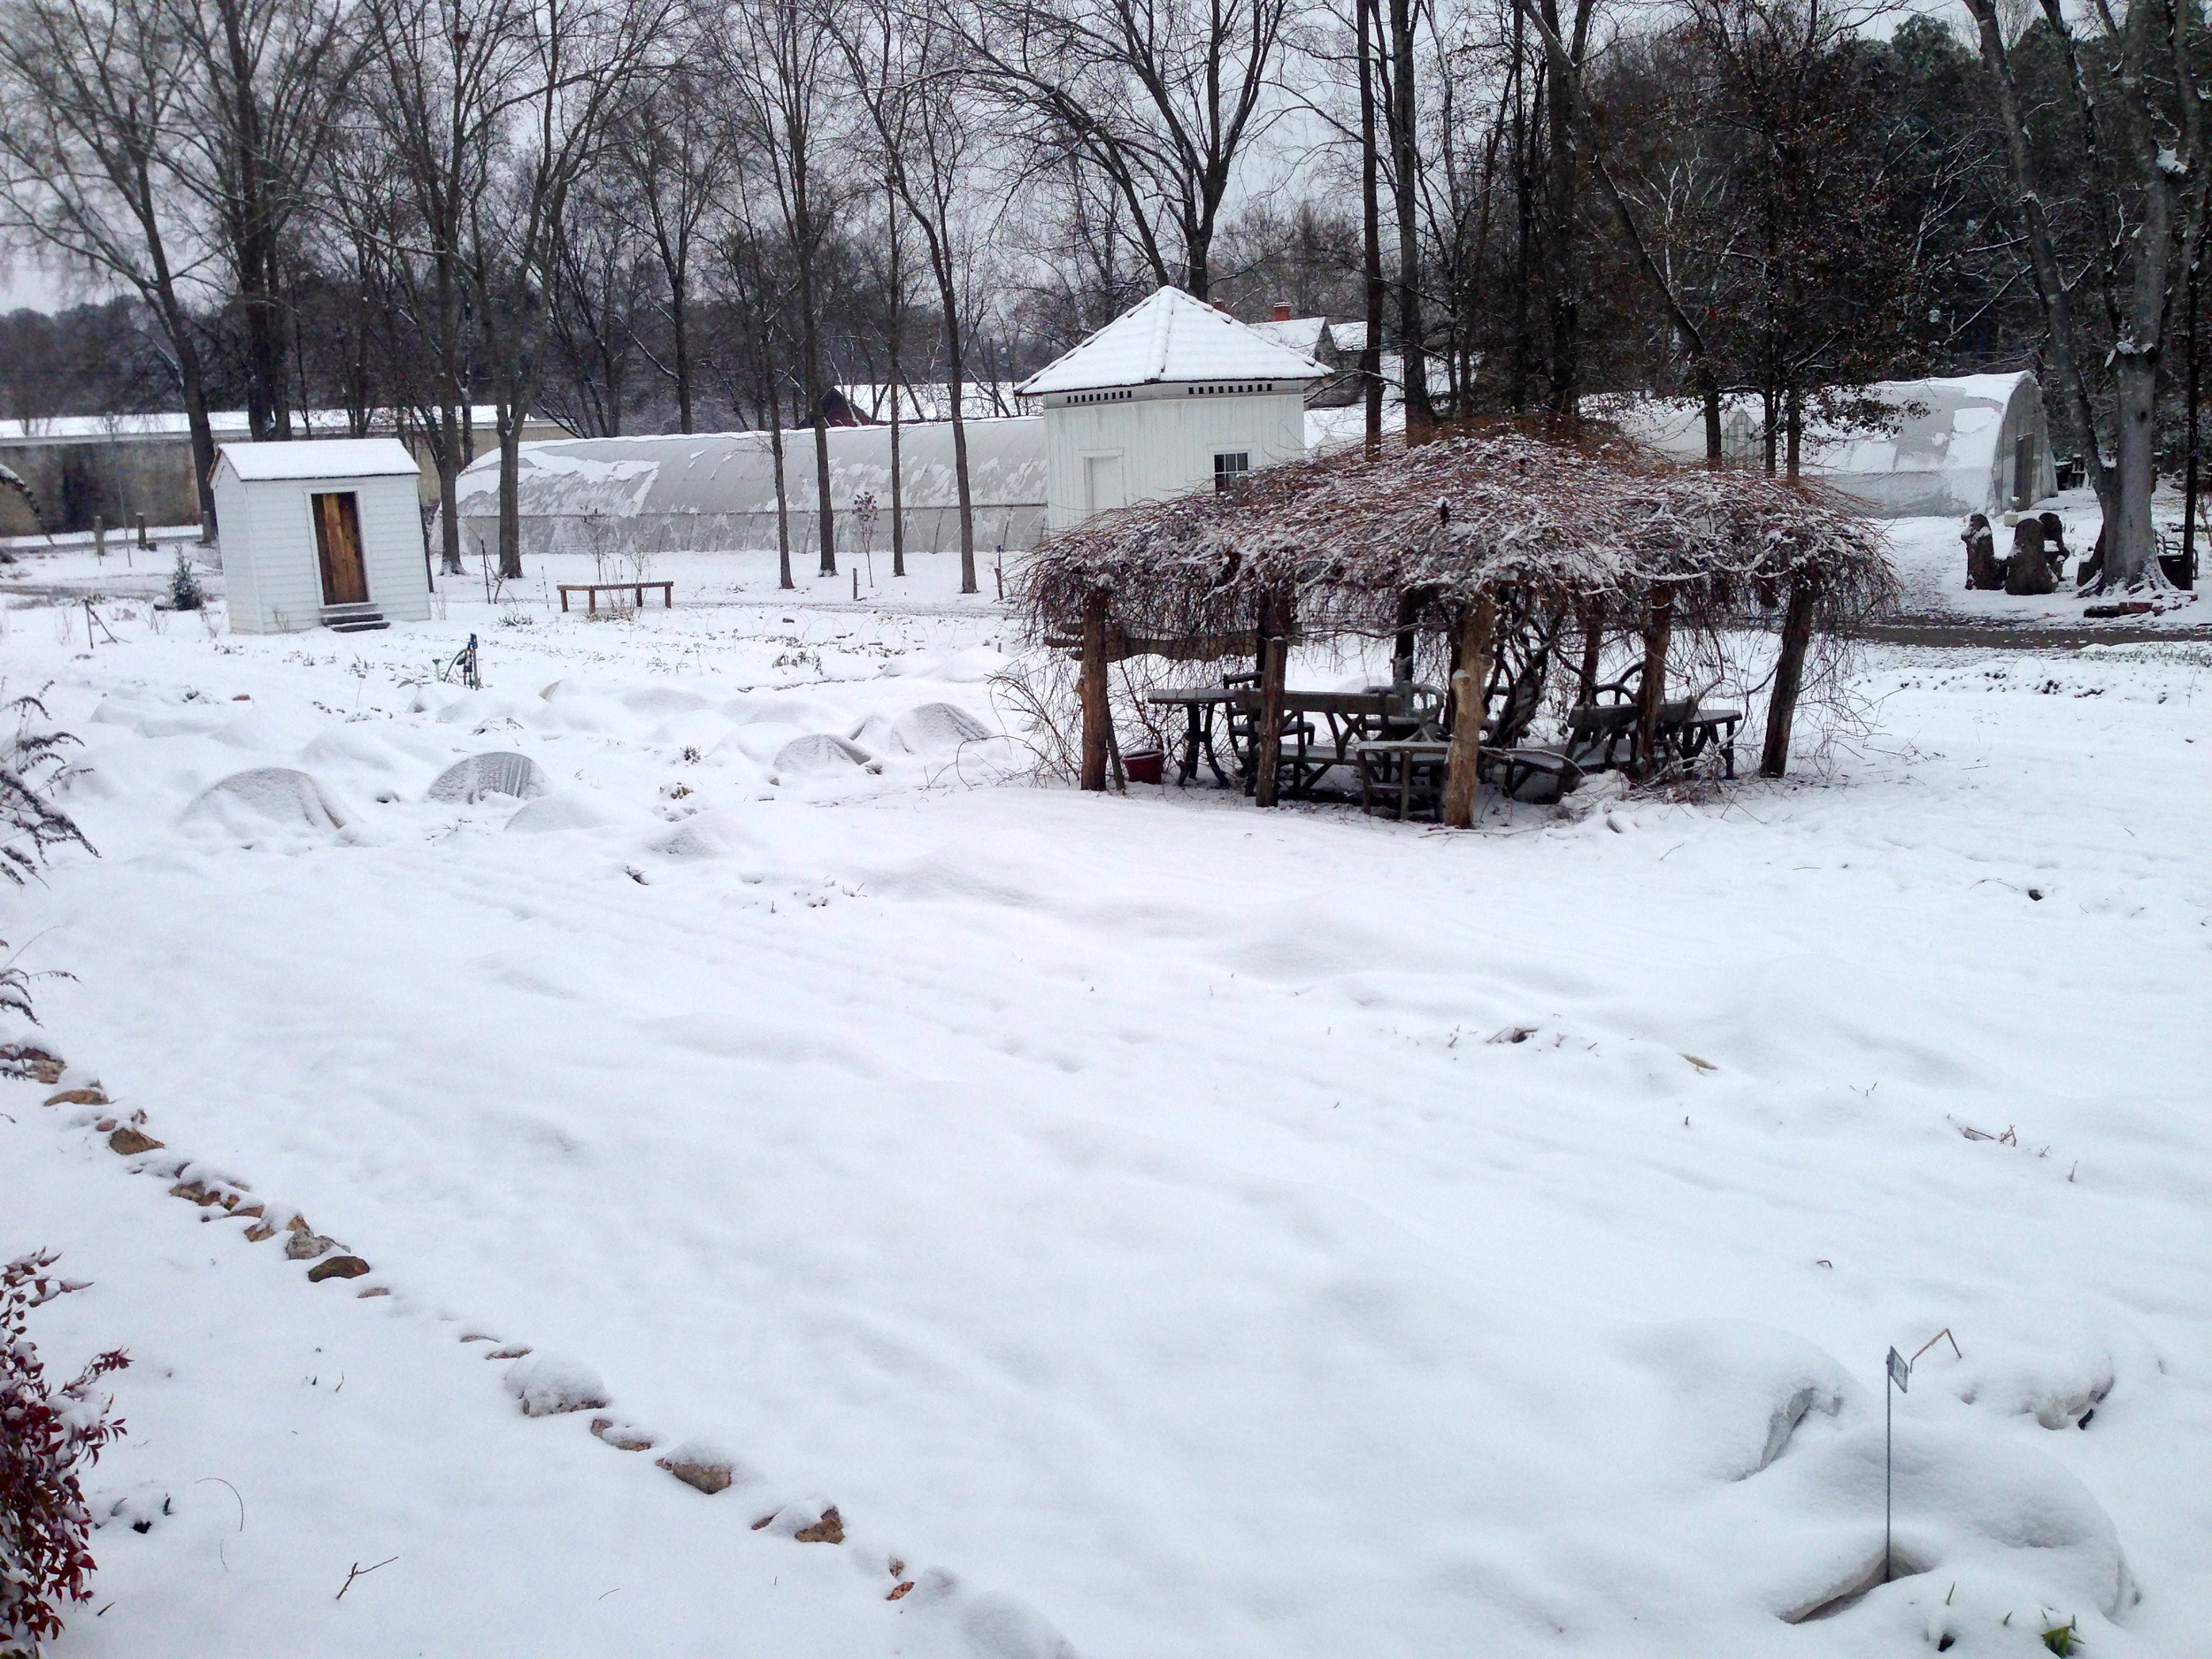 The garden beds are all white and it's not just the row covers that make it so.